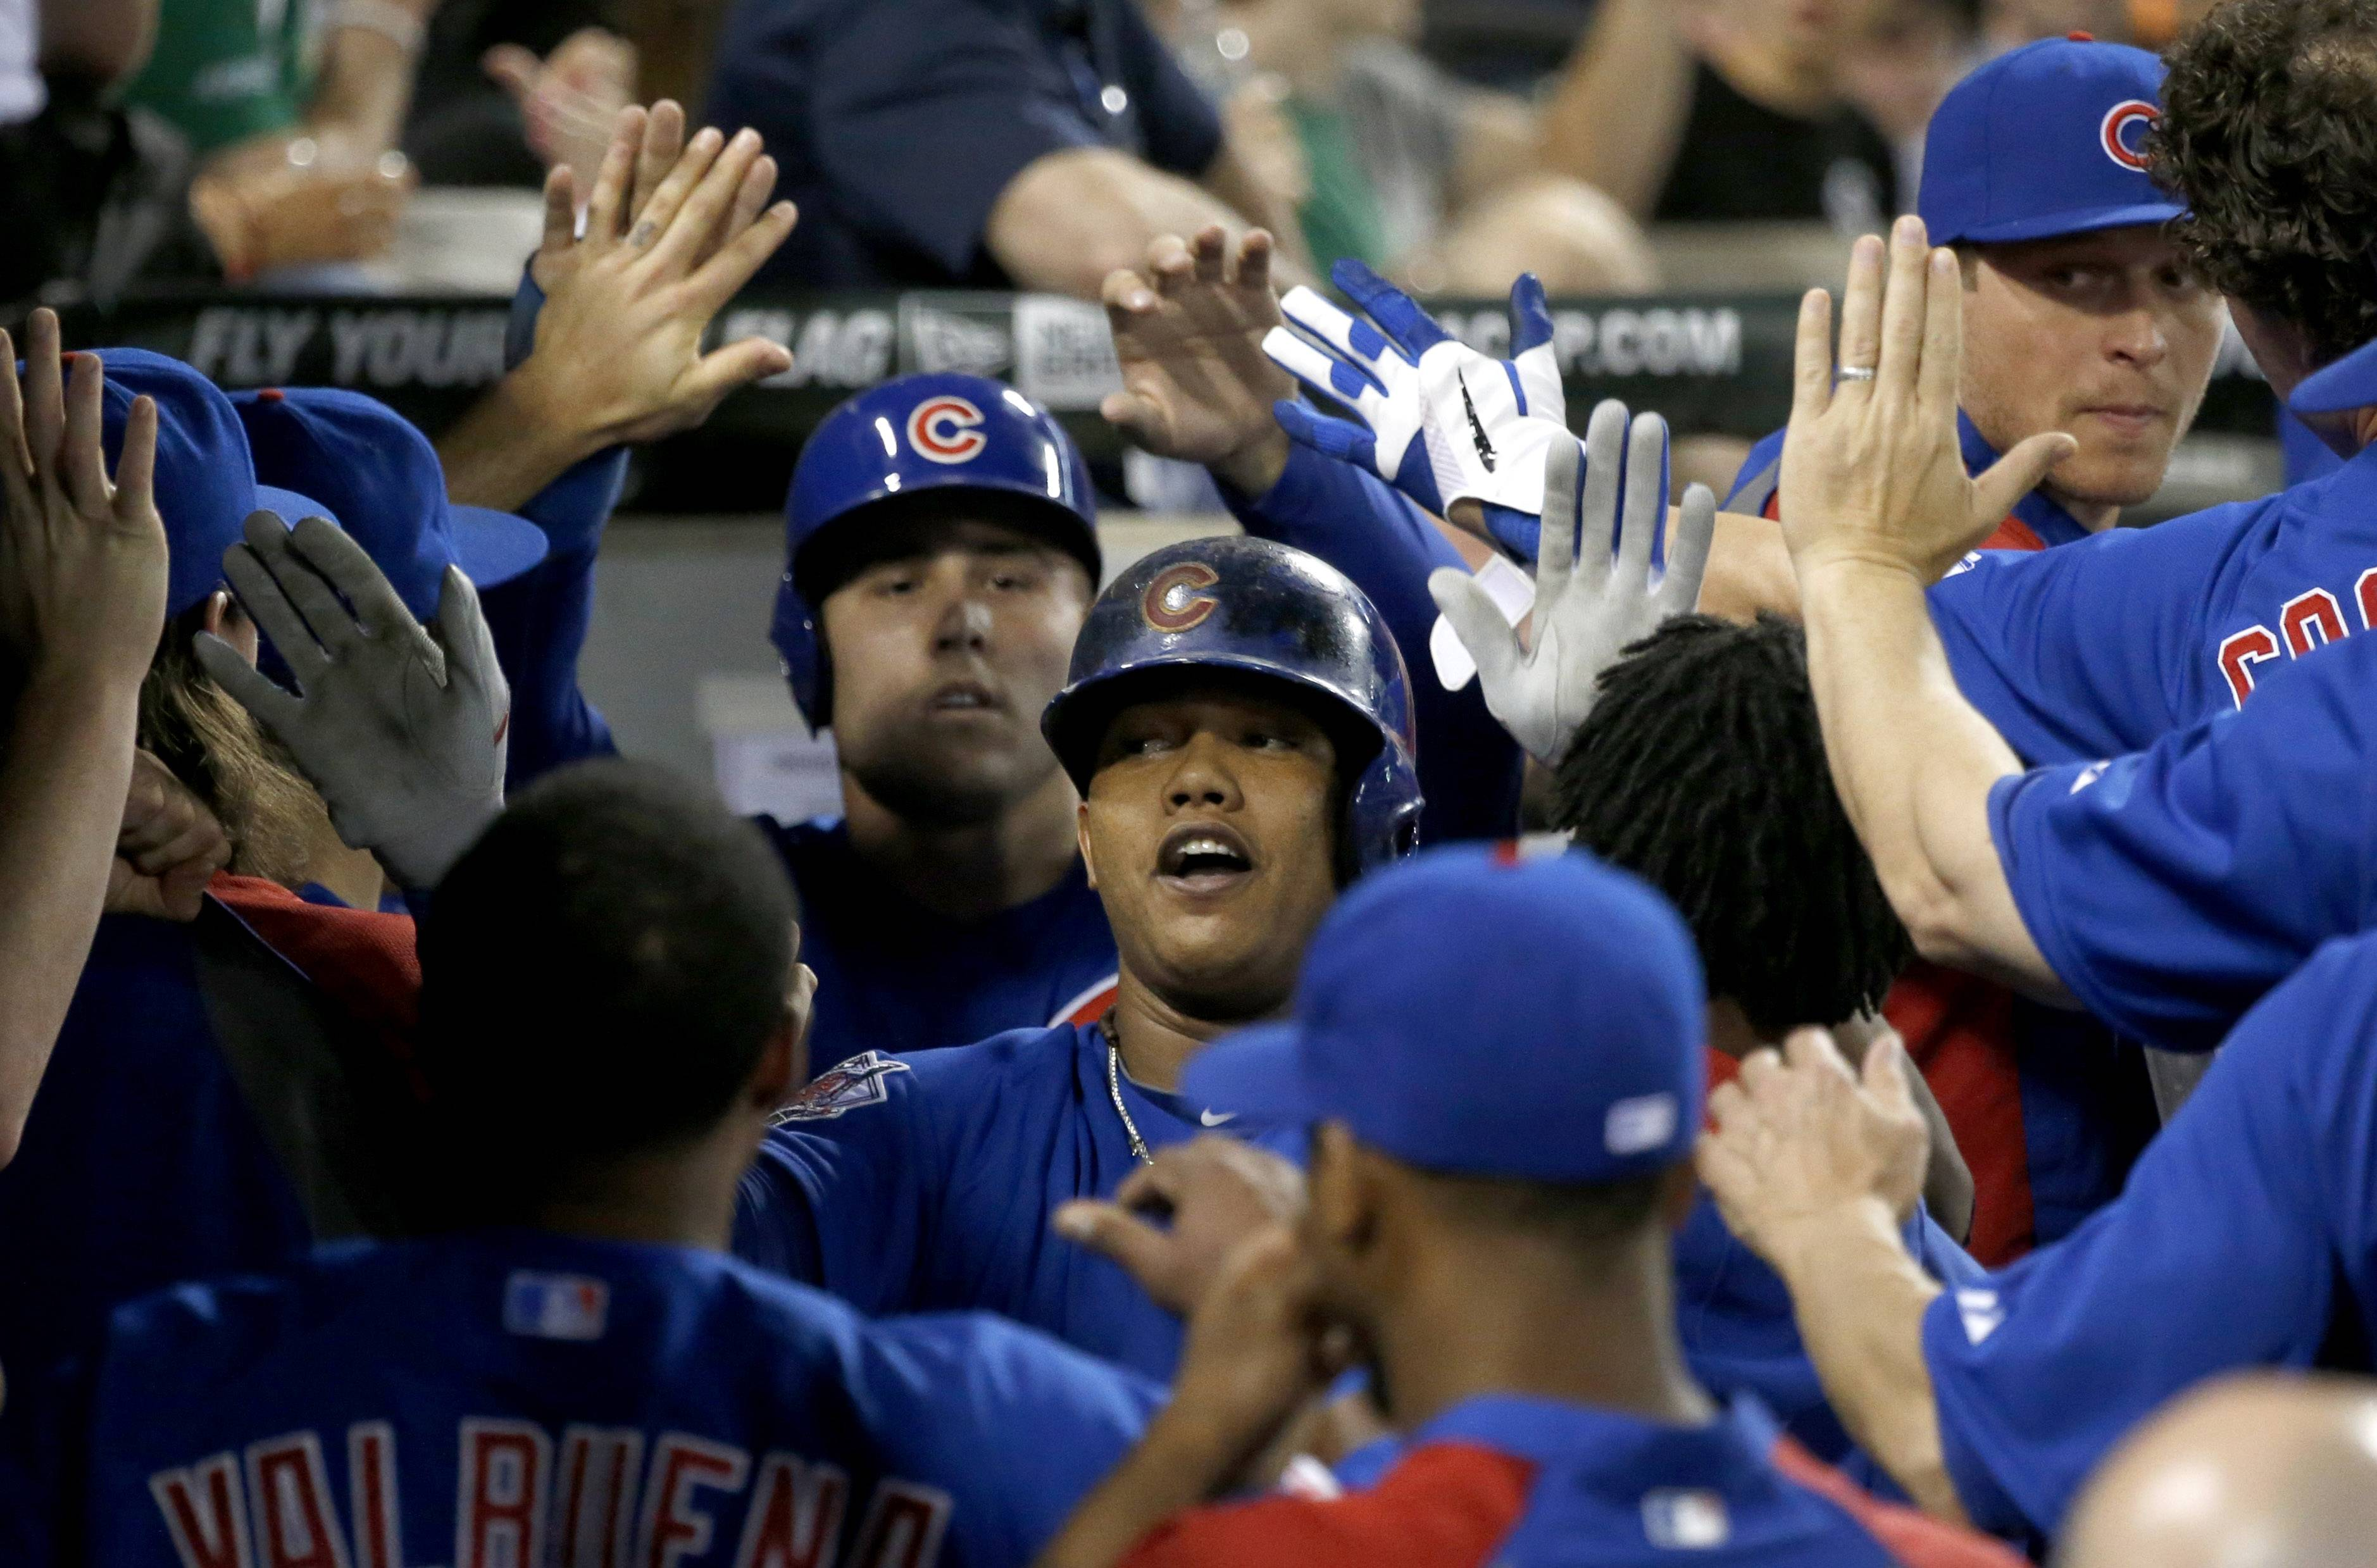 Starlin Castro is congratulated in the Cubs' dugout after his 2-run homer off White Sox starter Scott Carroll in the fourth inning Thursday night.